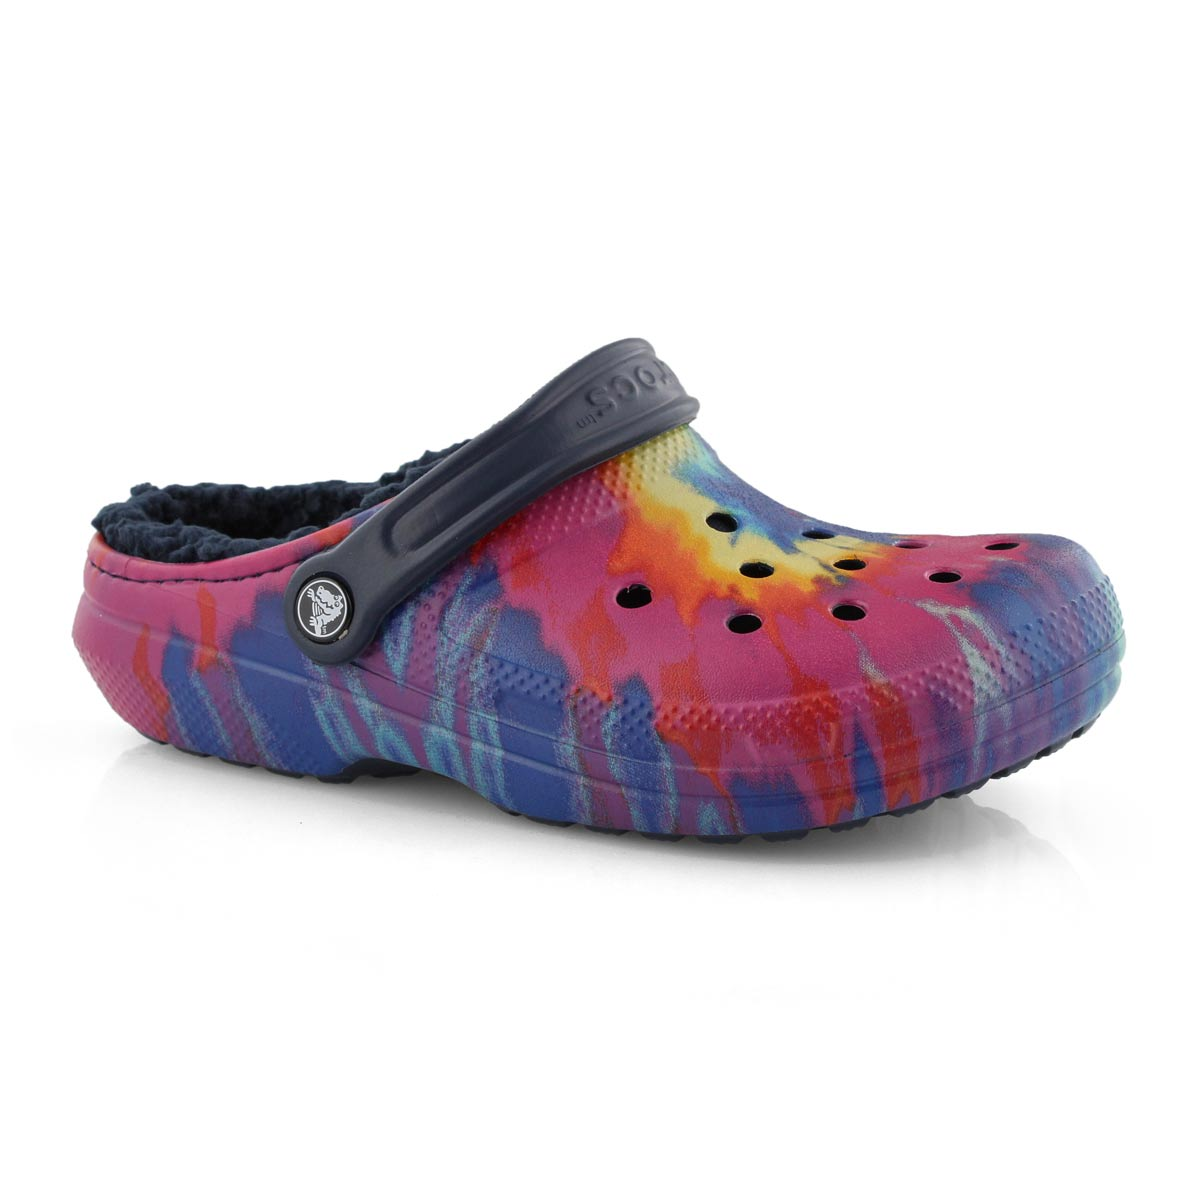 Lds Classic Lined Tie Dye multi clog